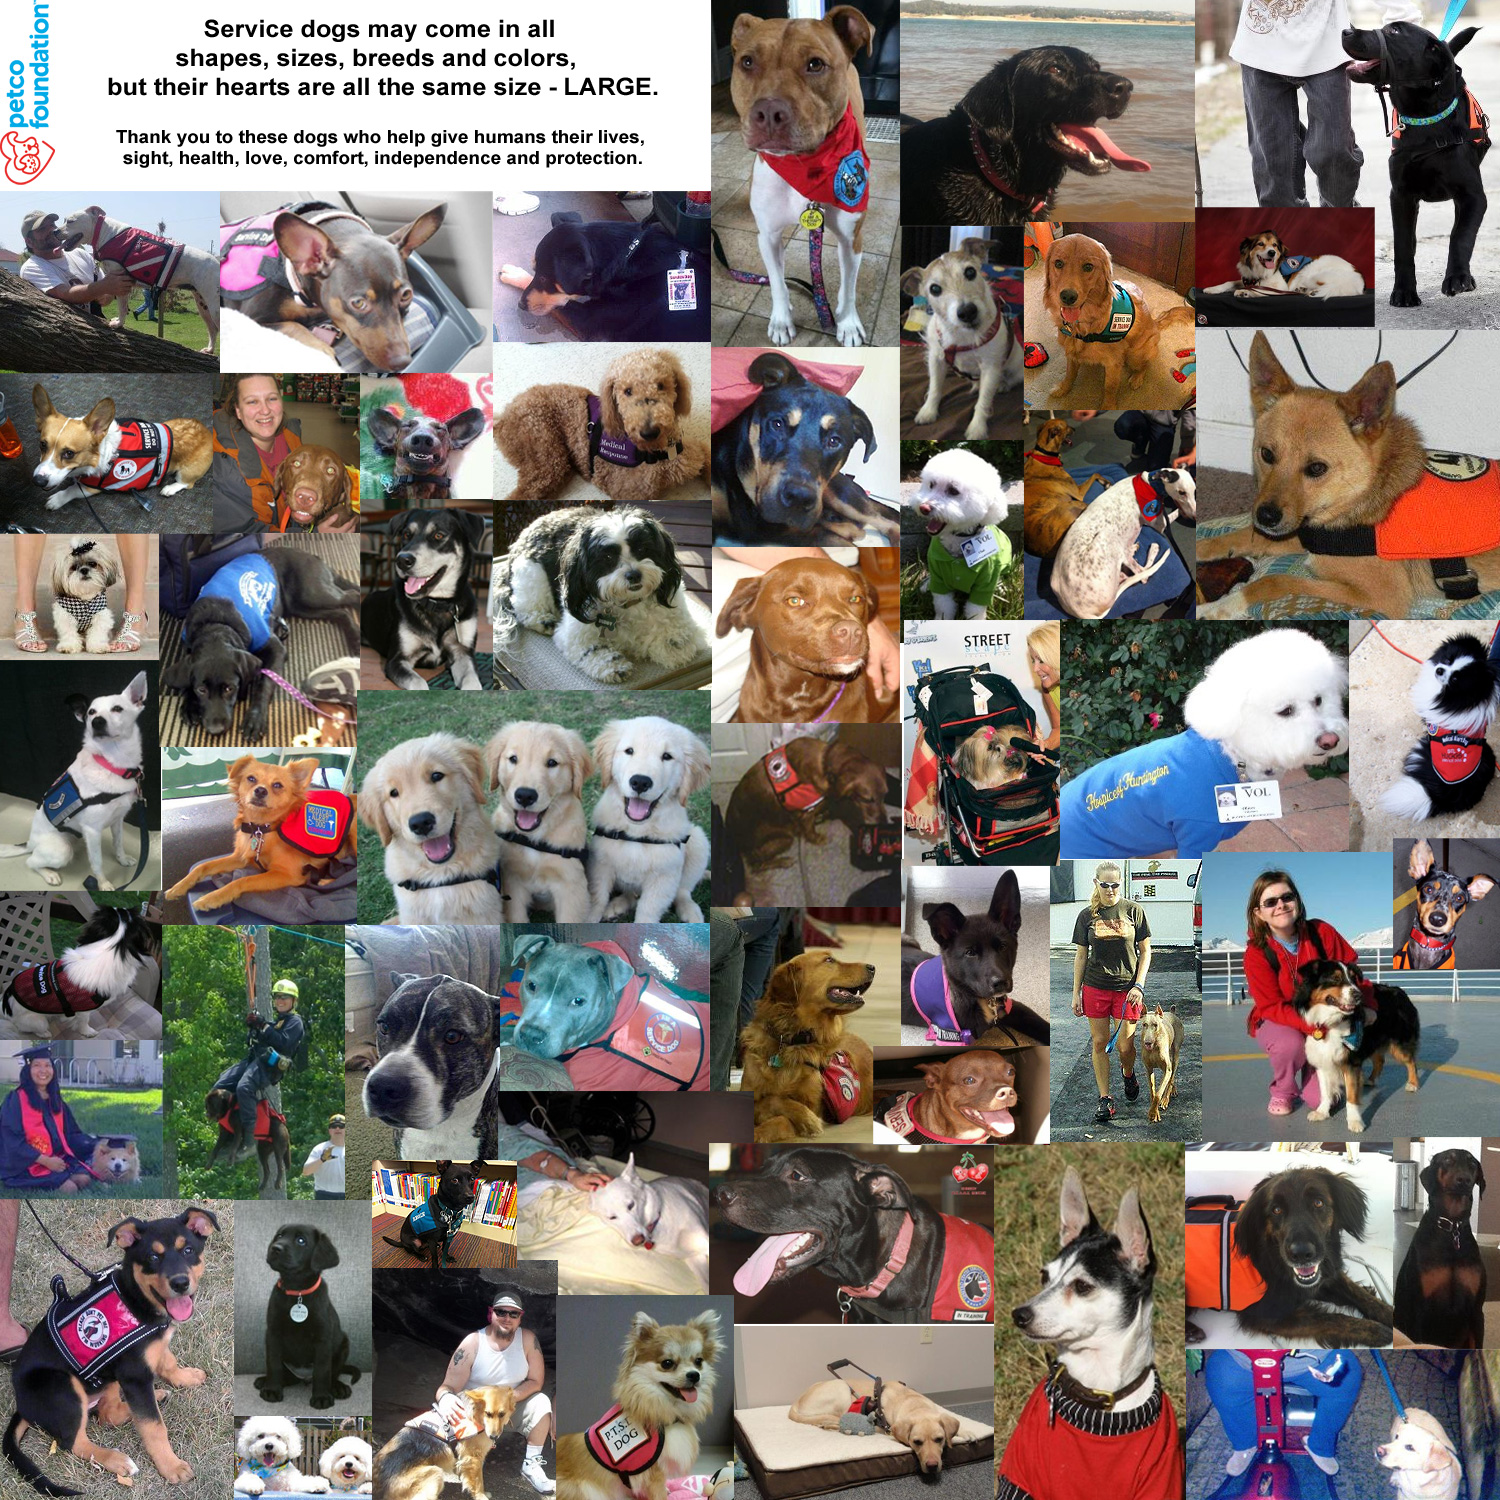 Petco Foundation Social Media Post